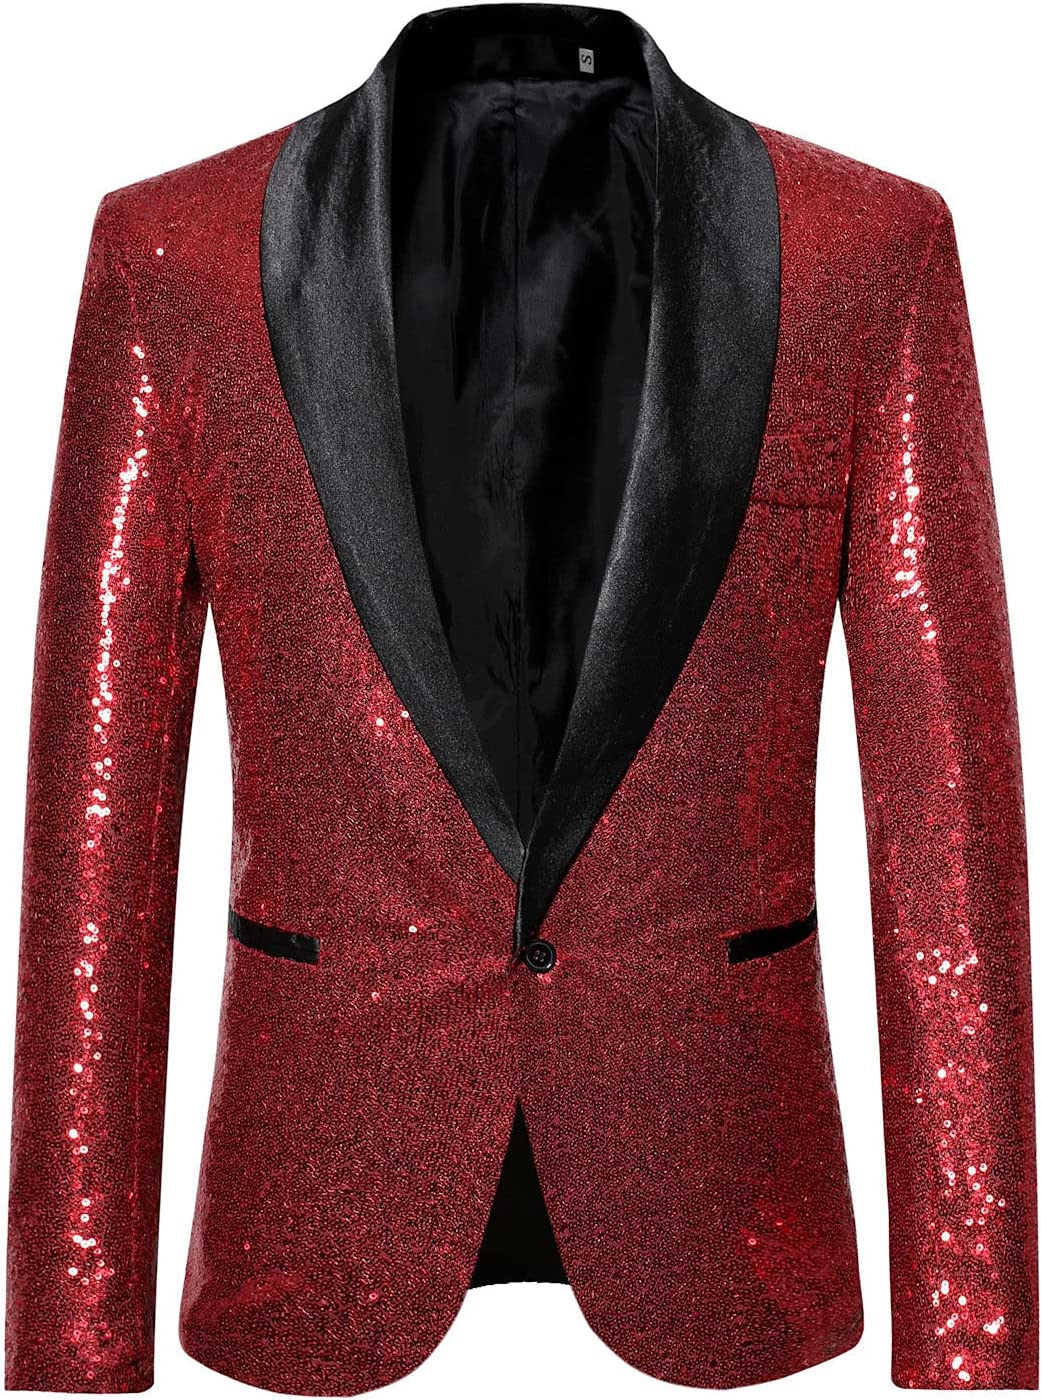 Men's Stylish Sequins Suit Jacket Blazer Two Color Conversion Shiny One Button Jackets Weddings Prom Party Dinner Tuxedo (Red,X-Large)